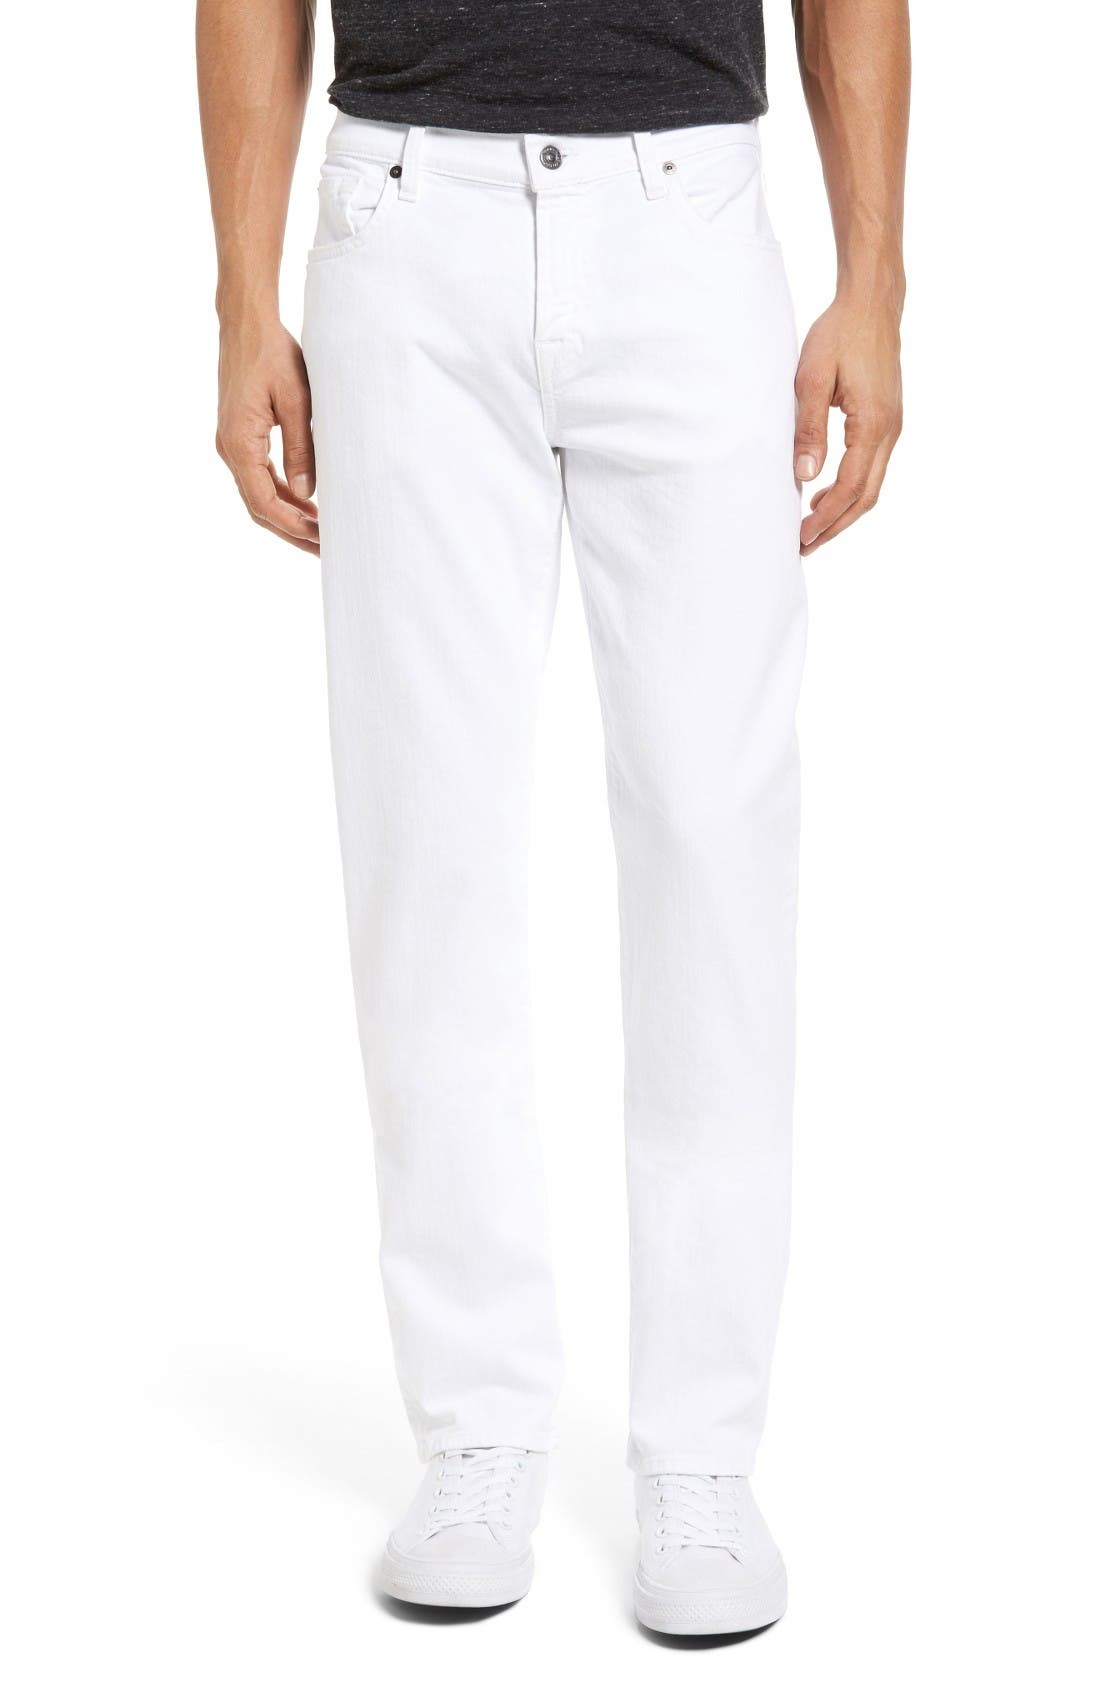 Luxe Performance - Slimmy Slim Fit Jeans,                             Main thumbnail 1, color,                             White